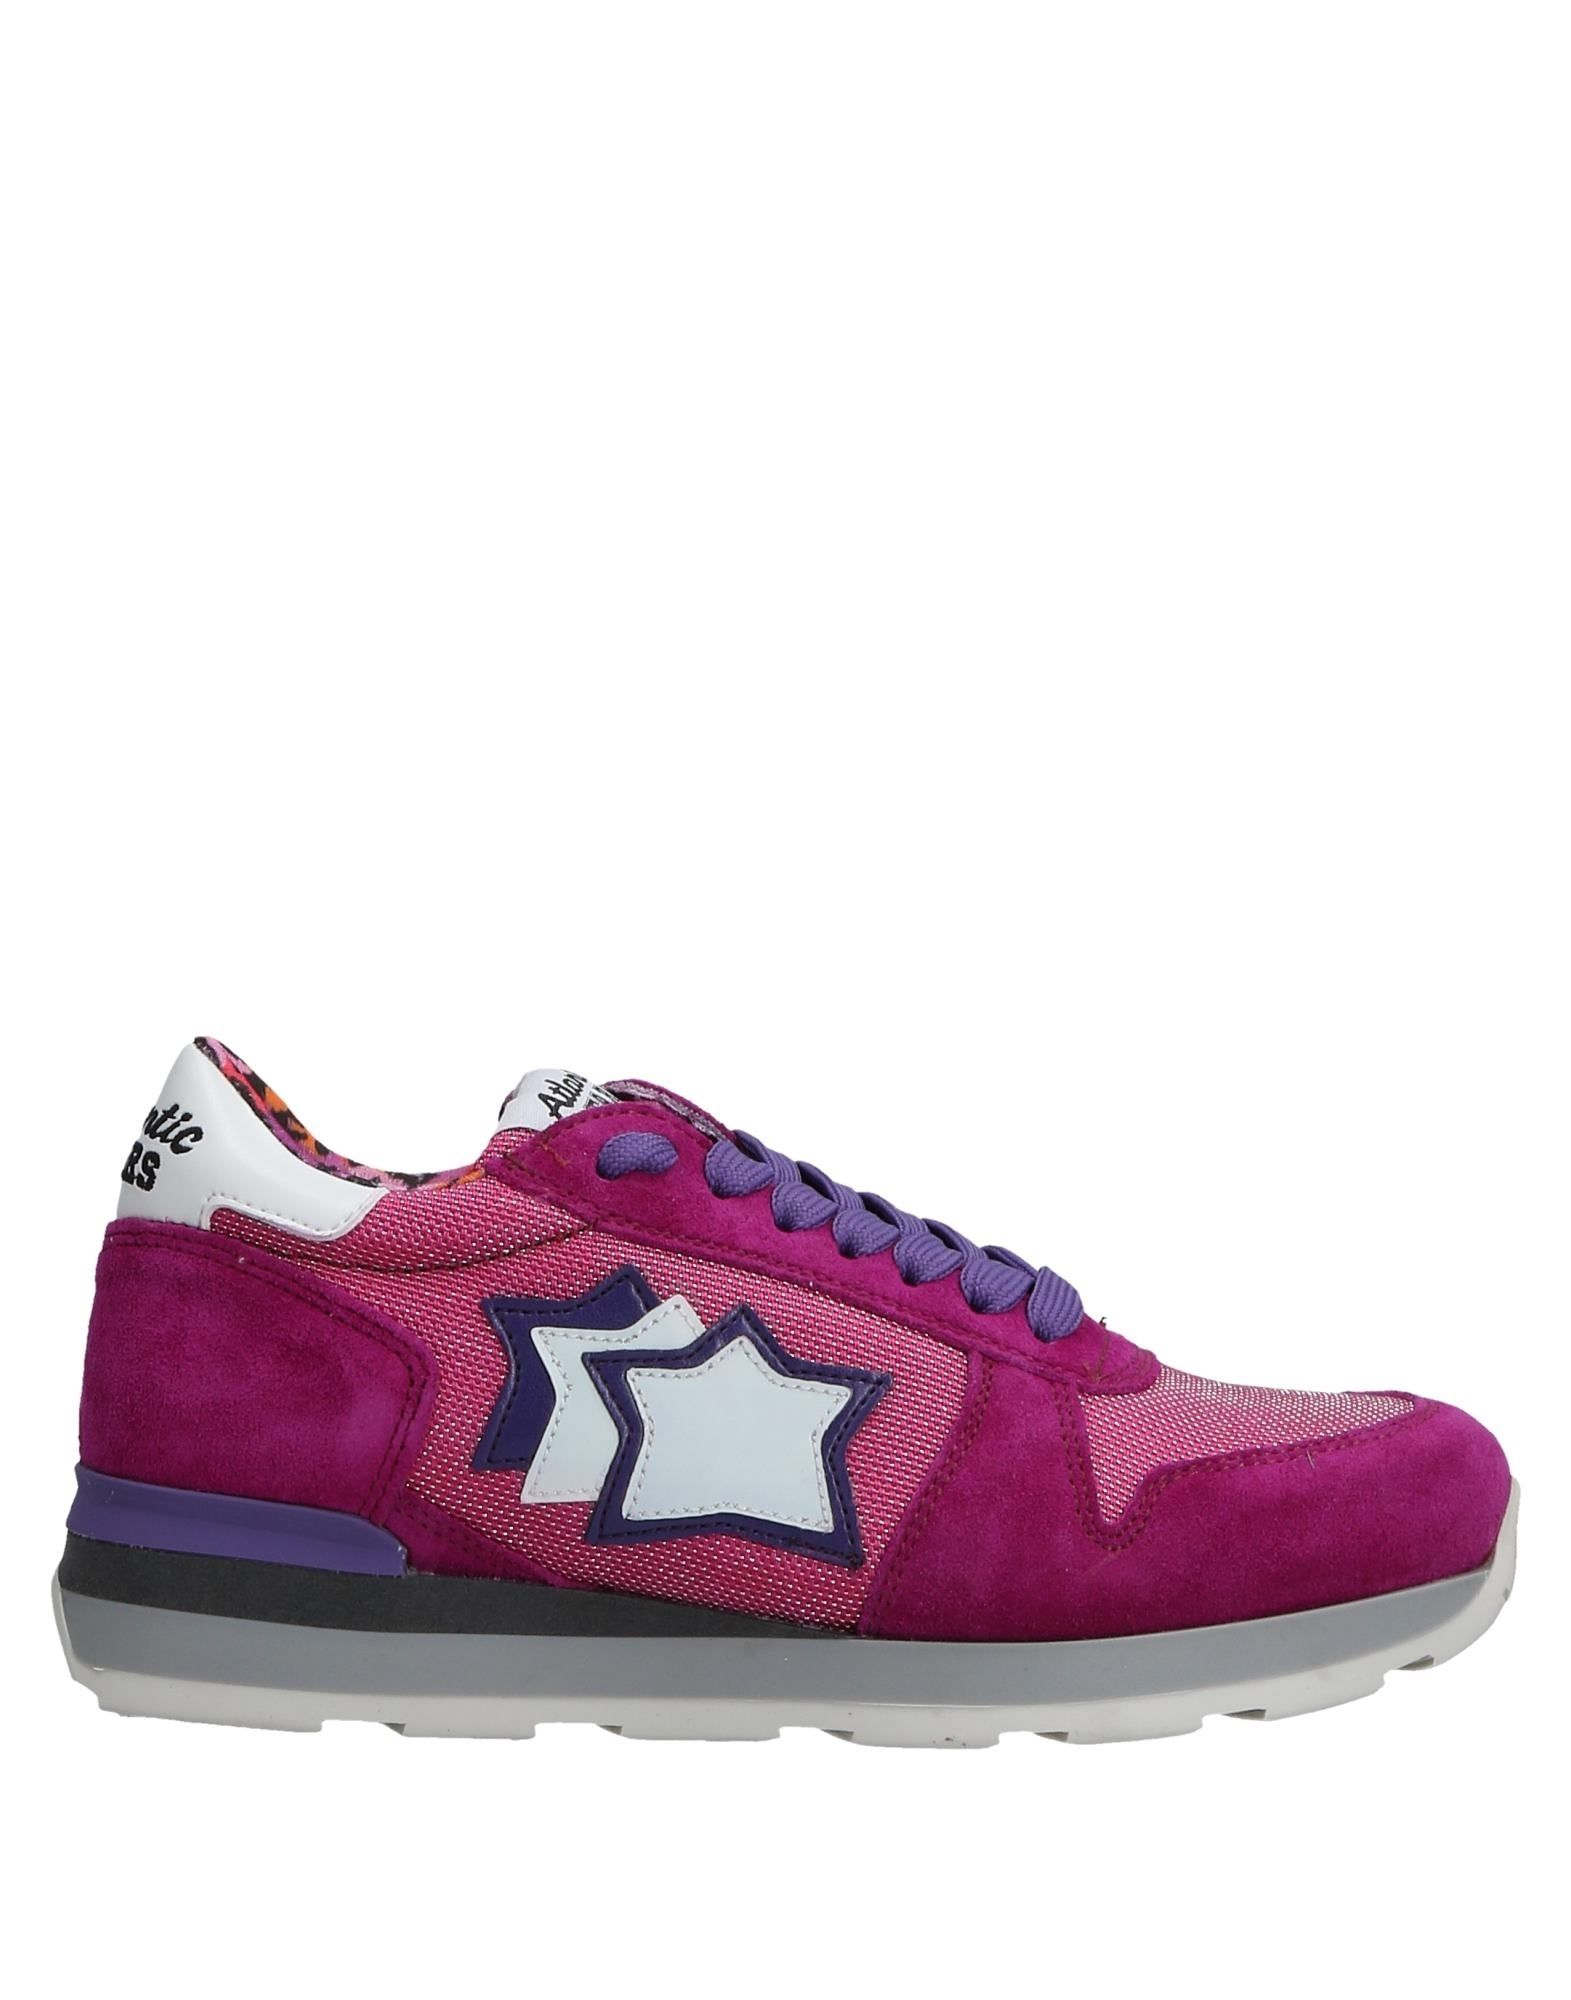 Atlantic Stars Sneakers - Women Atlantic Stars Sneakers online on 11524757RI  United Kingdom - 11524757RI on d13b5e